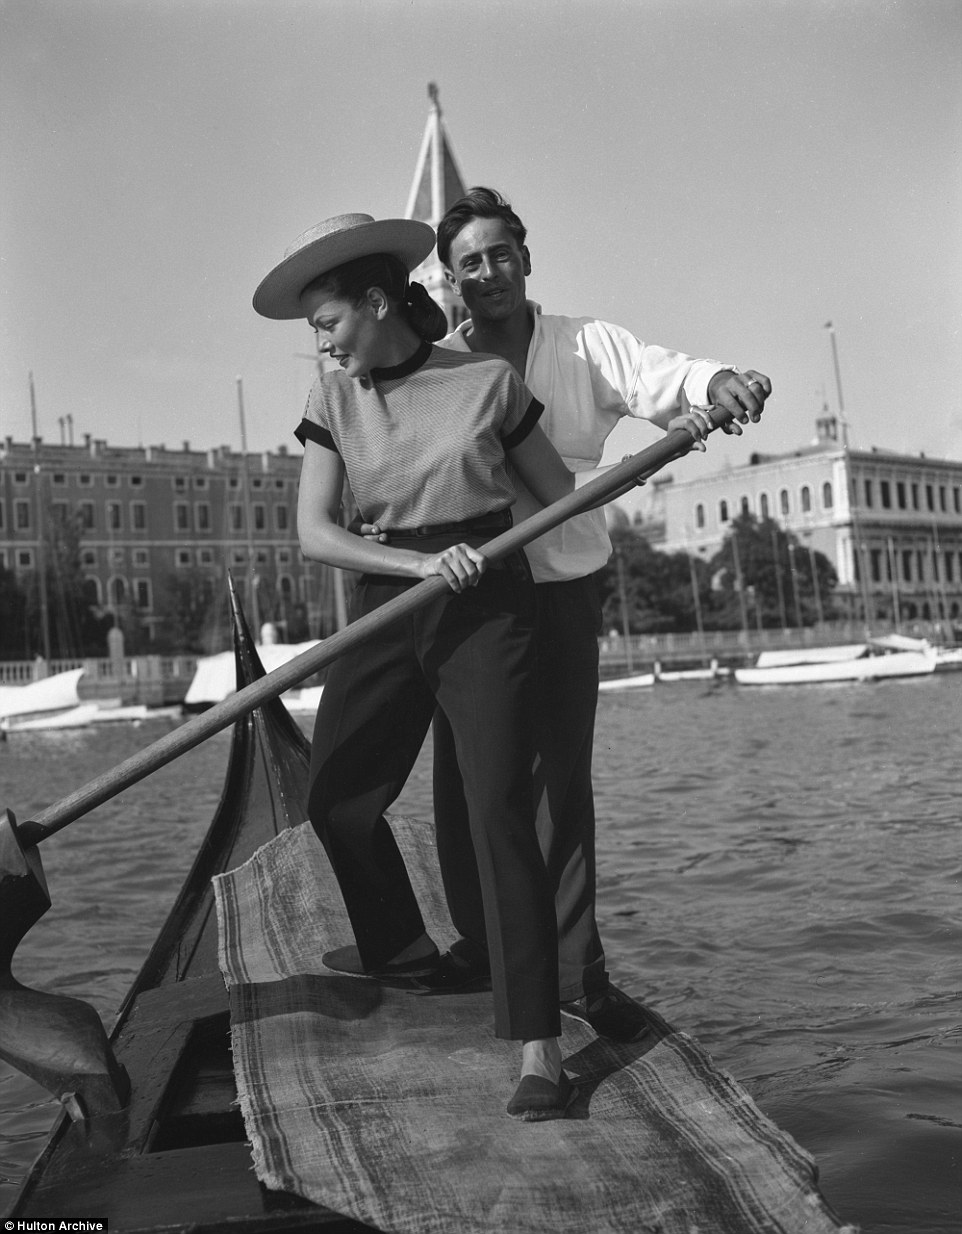 Later, donning a hat,  Gene Tierney tries her hand at rowing a gondola. She was nominated for an Academy Award for Best Actress for her performance as Ellen Berent Harland in Leave Her to Heaven